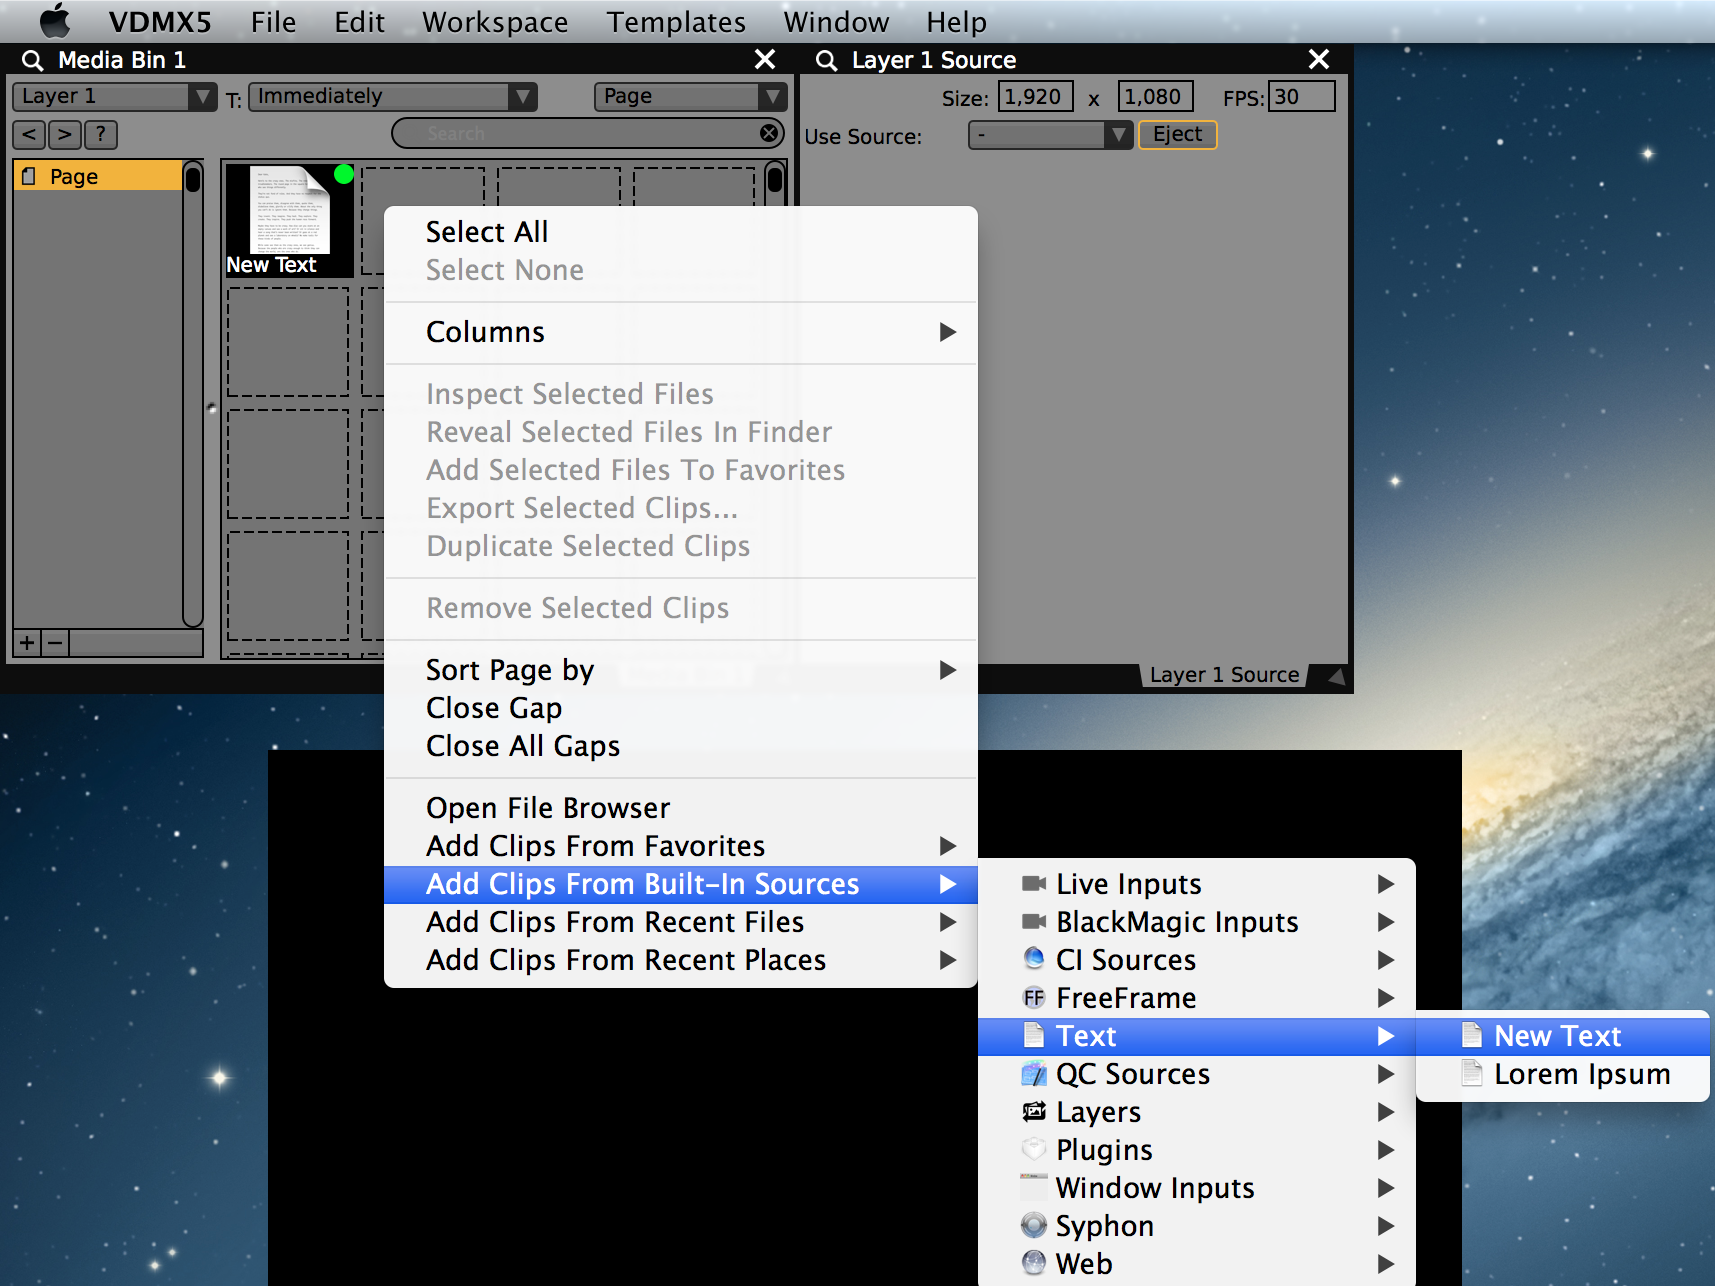 Text files can be loaded from a disk or created from the 'built in sources' contextual menu.